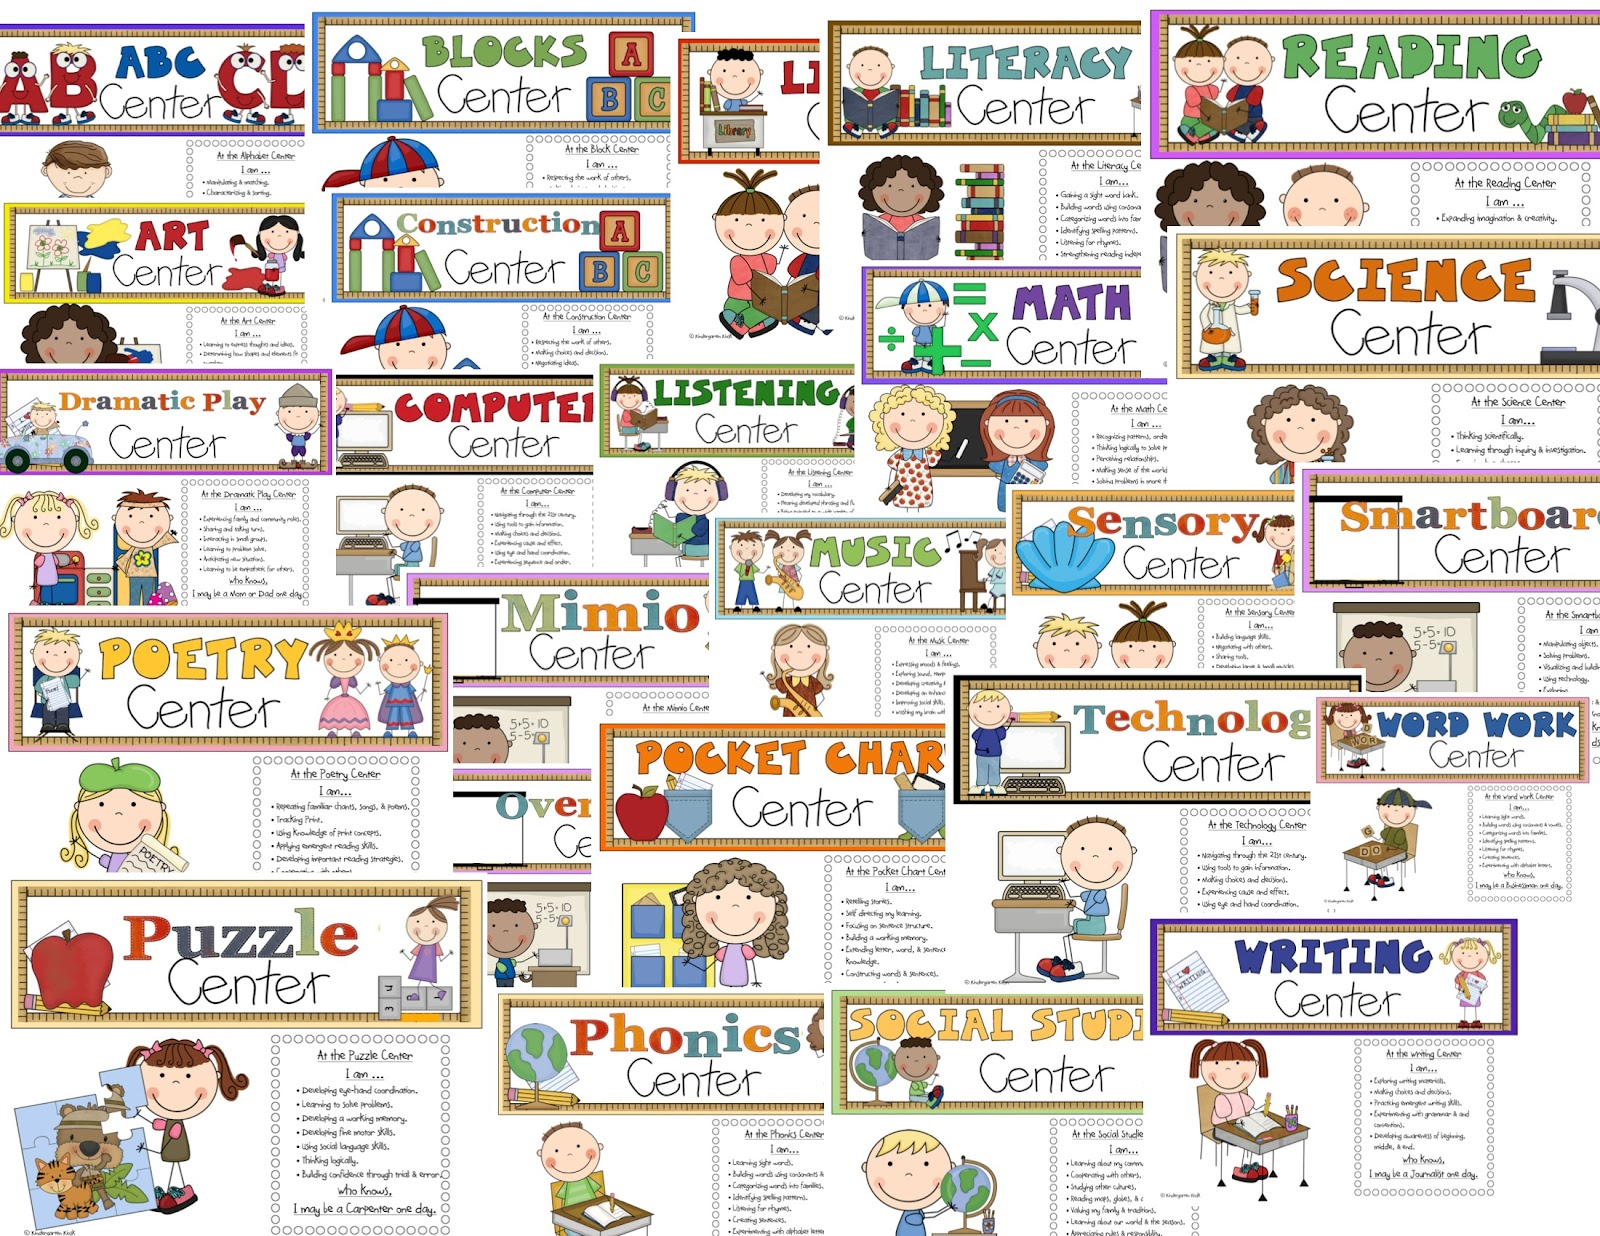 Free center cliparts download. Centers clipart preschool learning